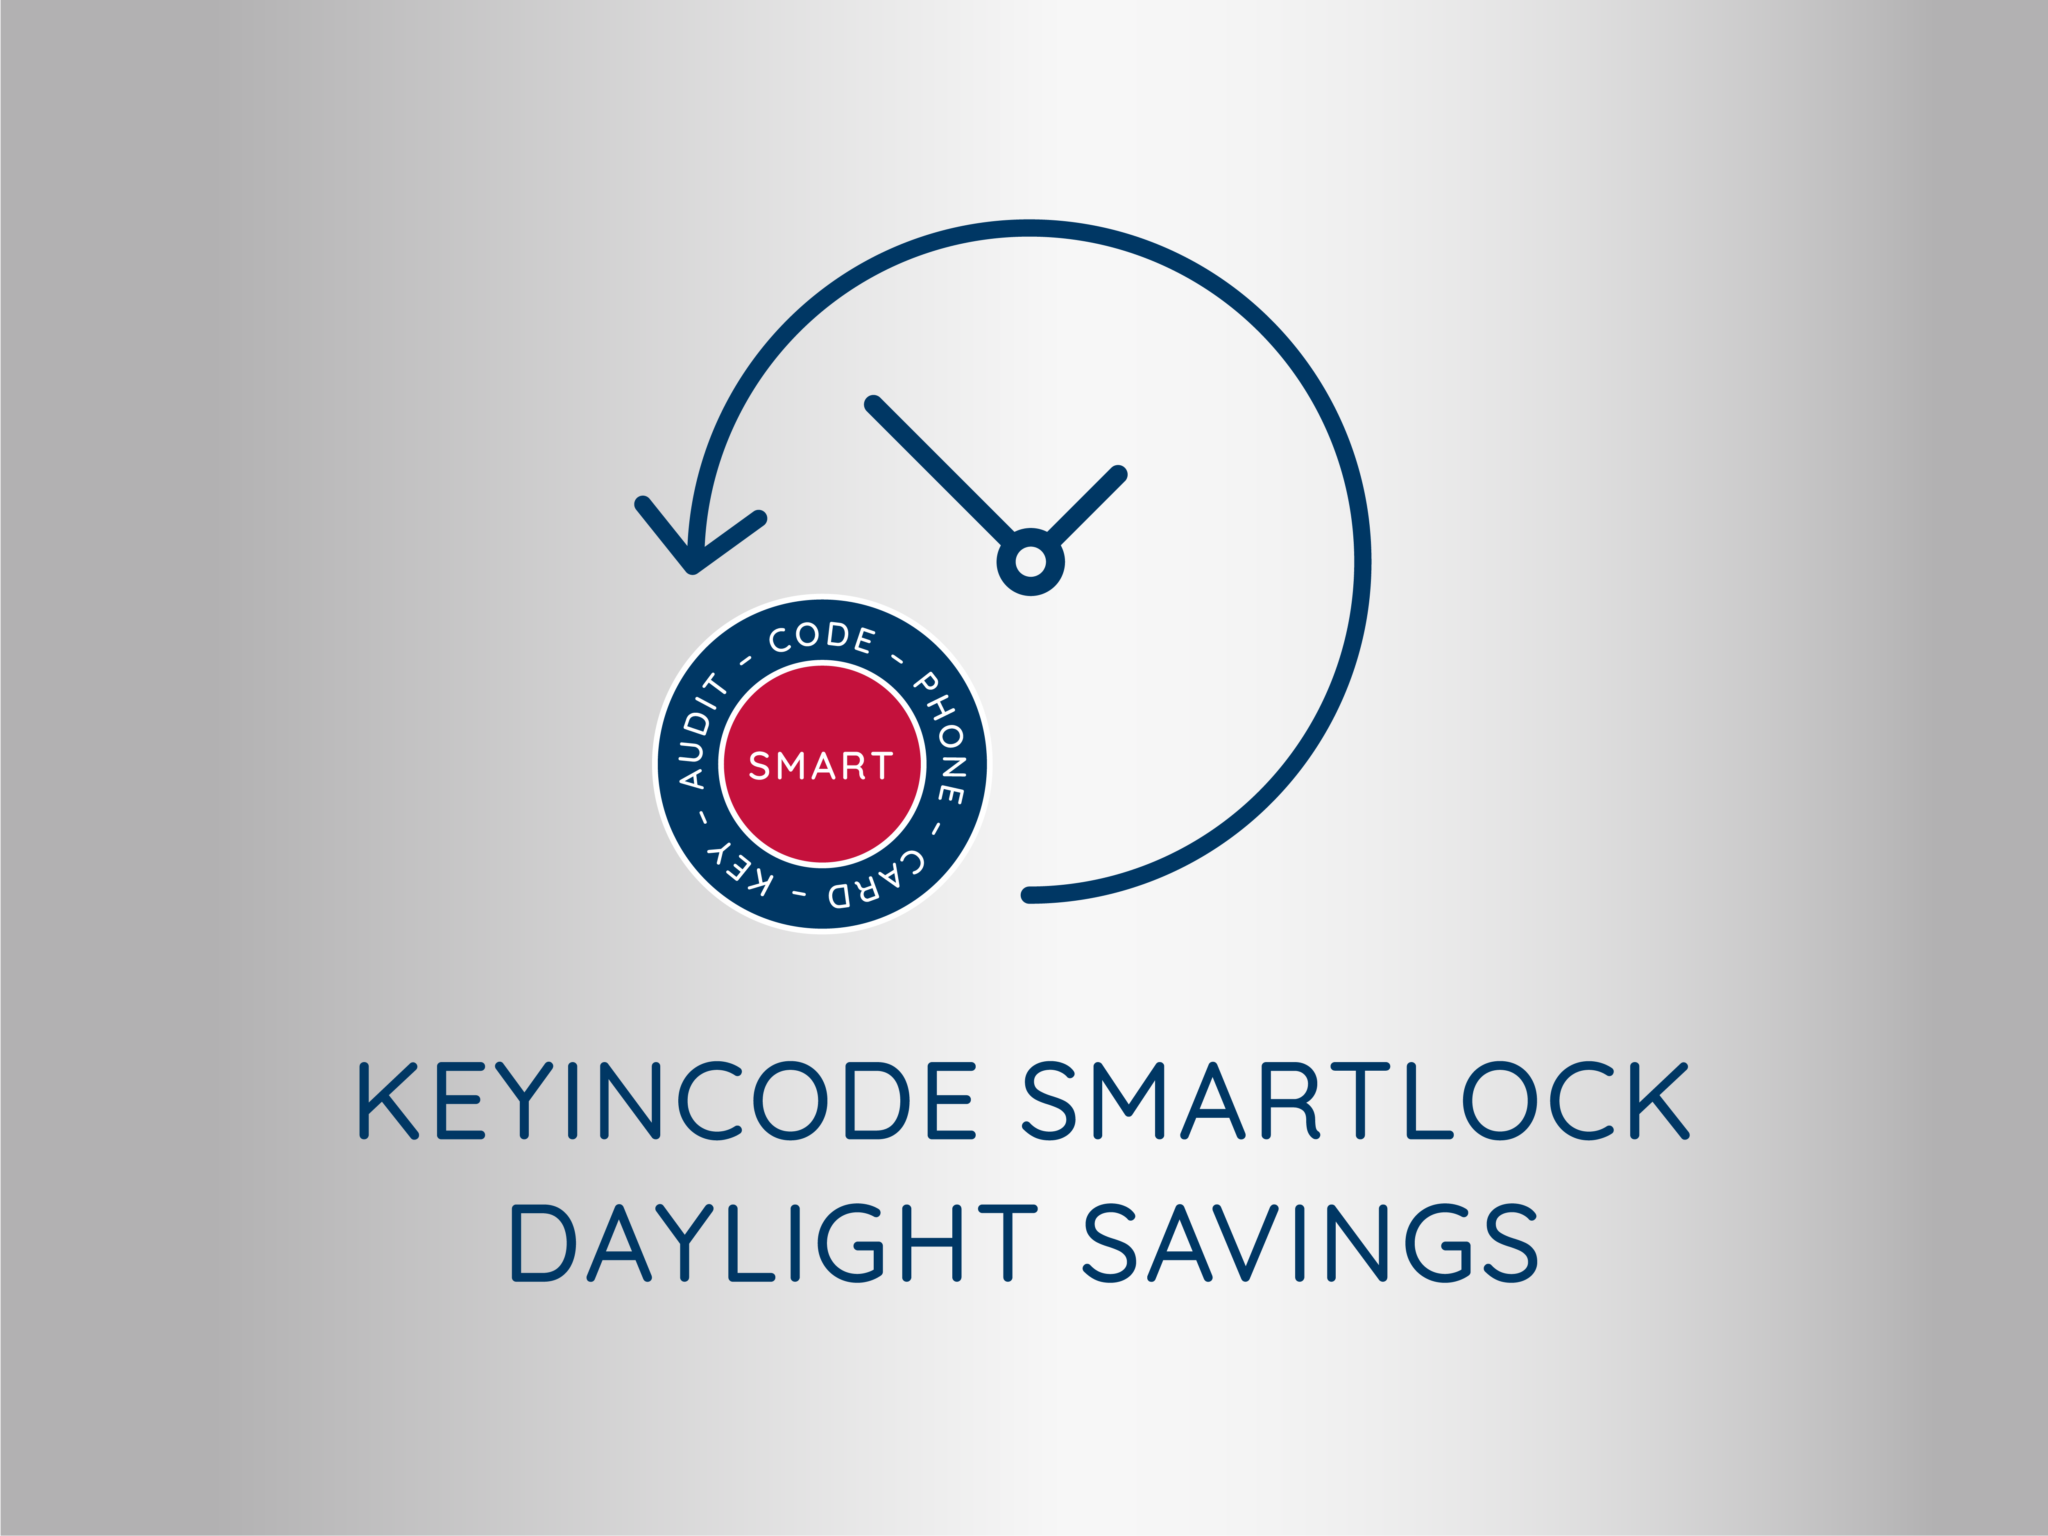 KEYINCODE Daylight Savings for SmartLock